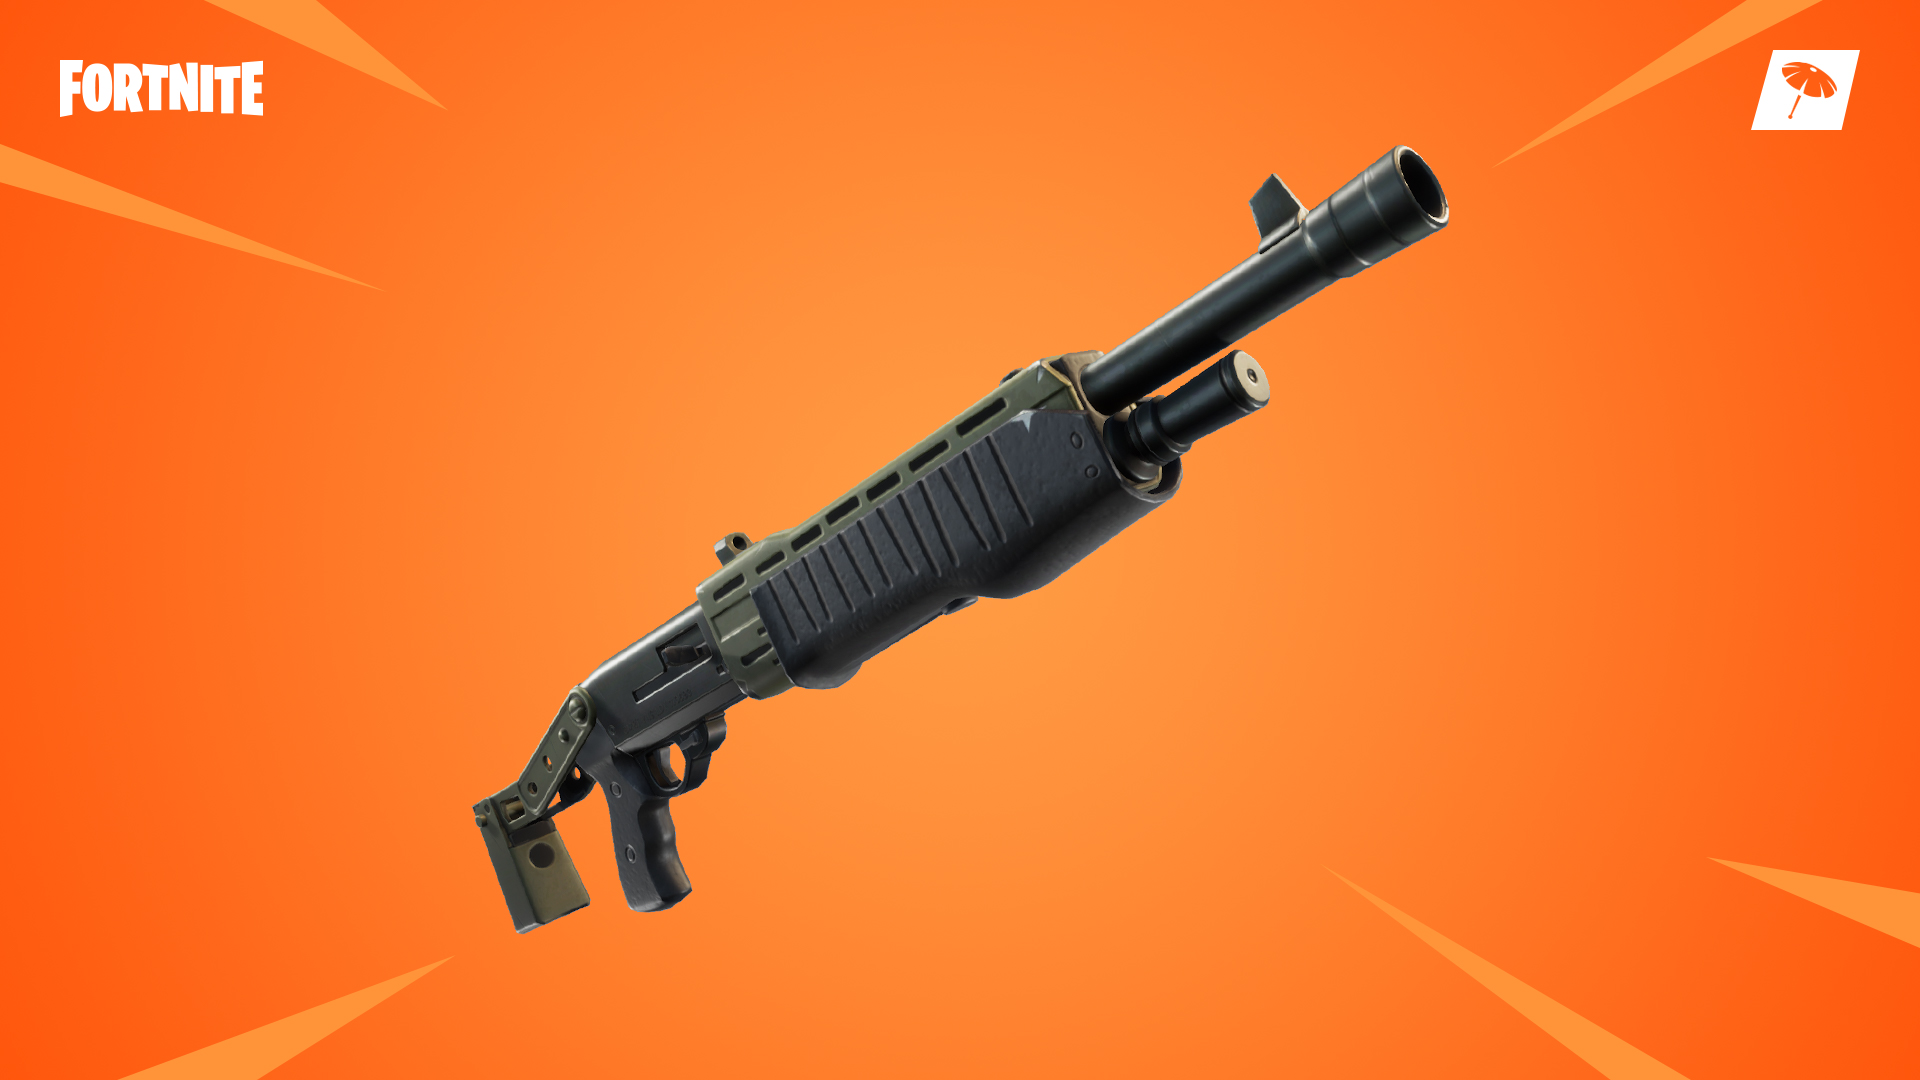 Fortnite Best Weapons Guide Complete List Of The Best Weapons In